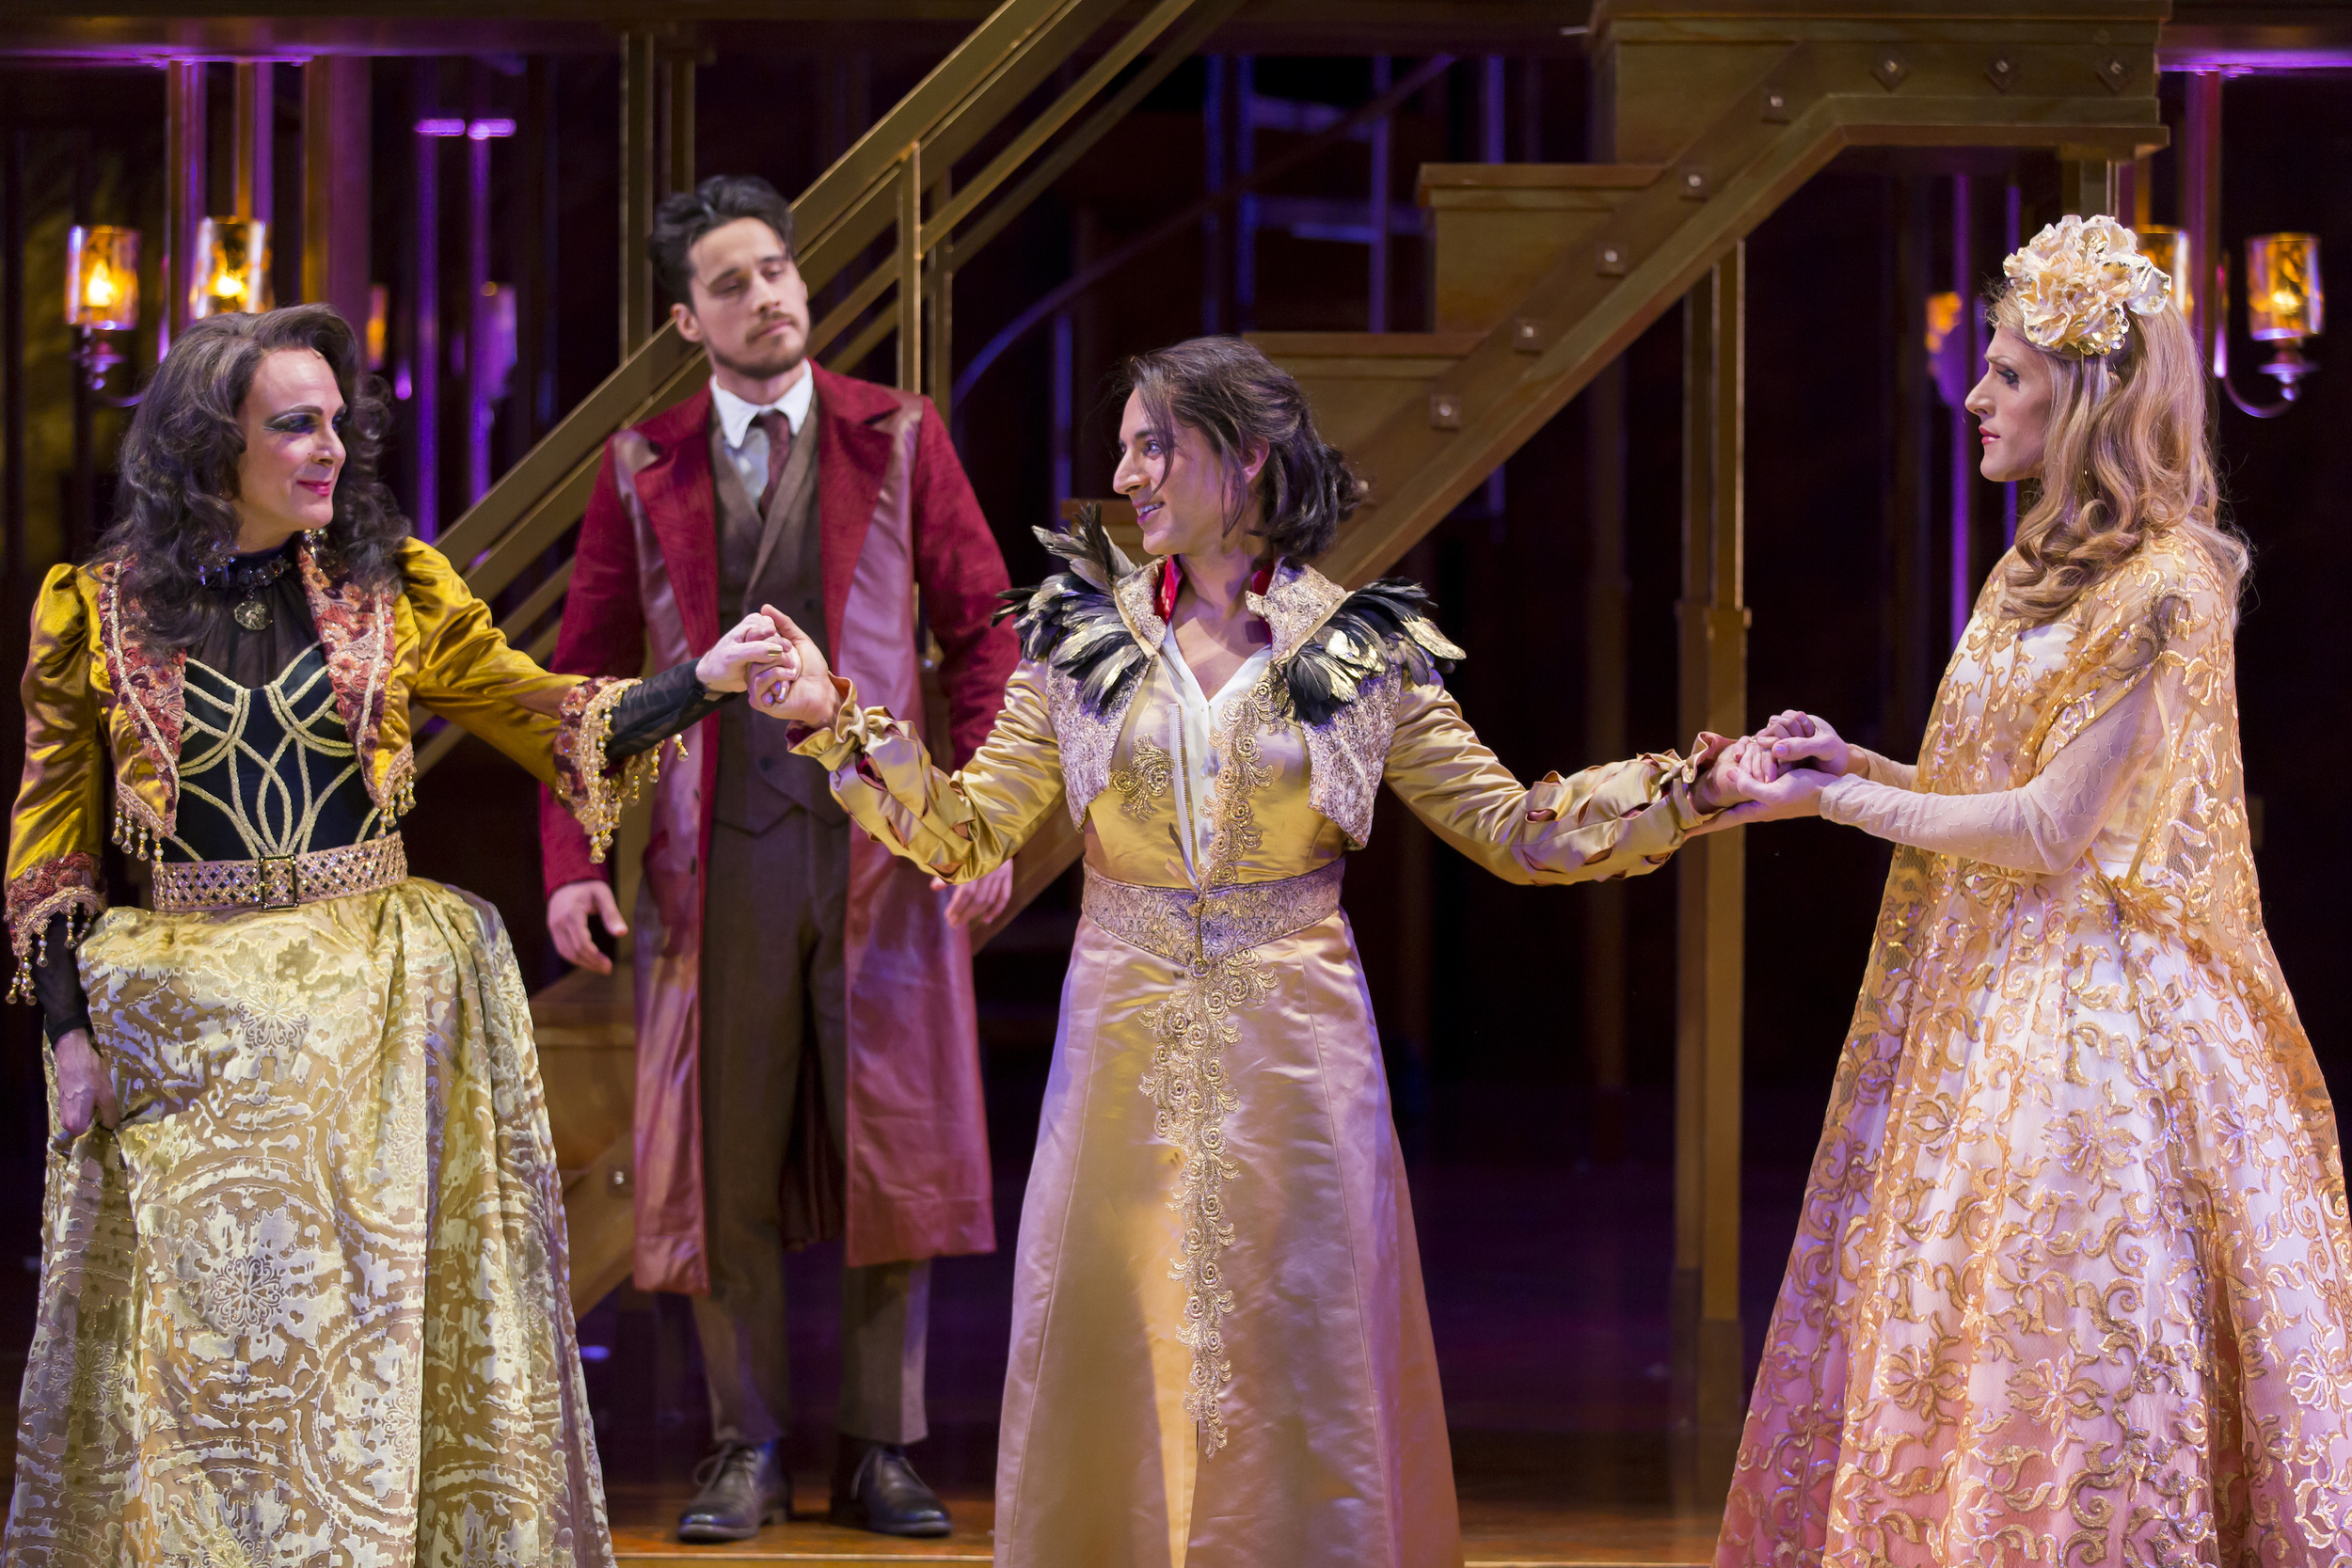 Rick Hammerly as the Contessa, Peter Gadiot as Petruchio, Maulik Pancholy as Katherina, and Oliver Thornton as Bianca in  The Taming of the Shrew.  (Scott Suchman)